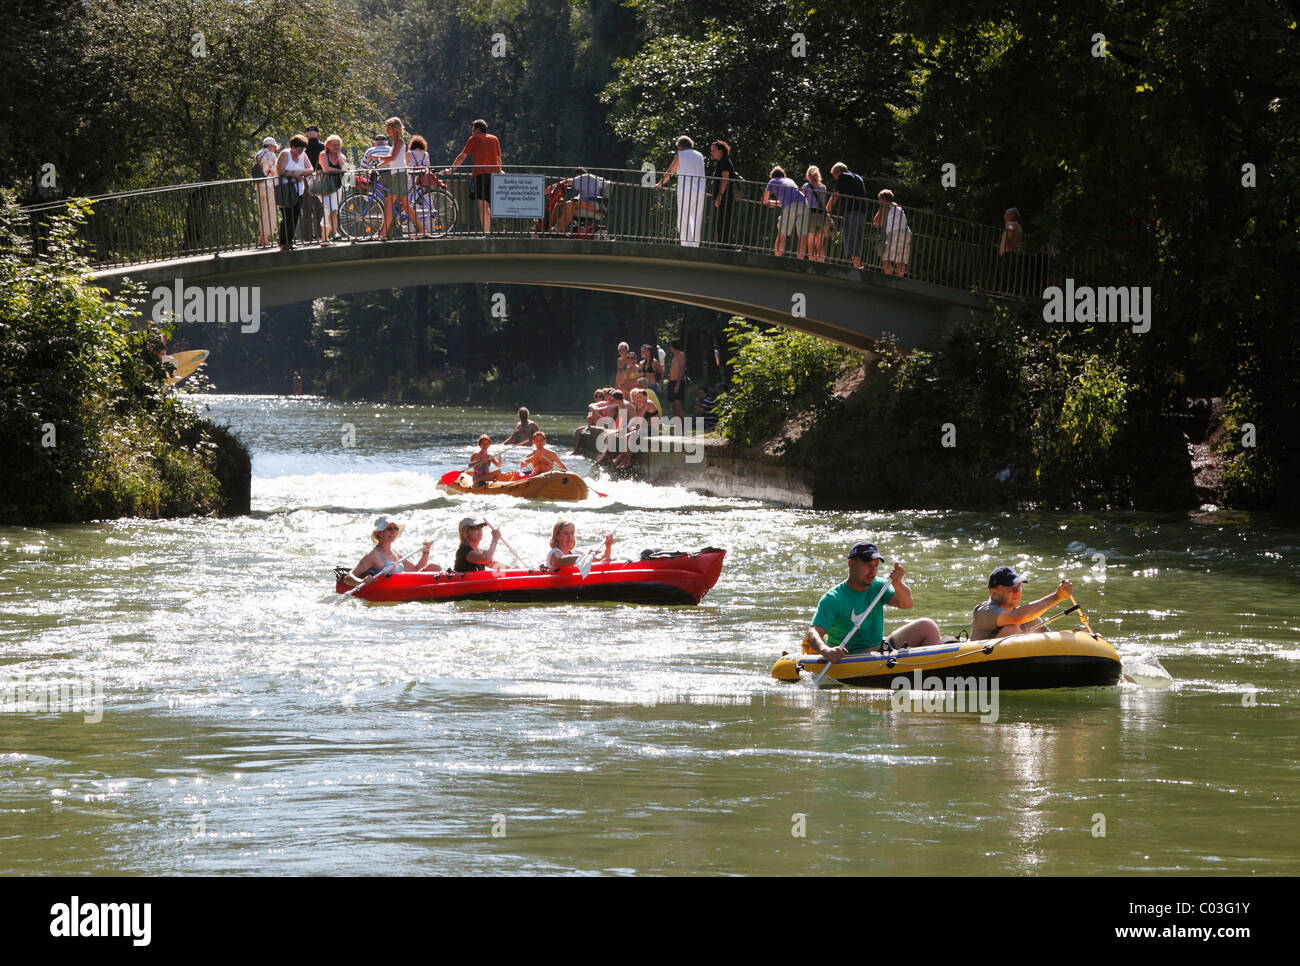 Inflatable boats on the Isar Flosskanal canal, Thalkirchen, Munich, Upper Bavaria, Bavaria, Germany, Europe - Stock Image